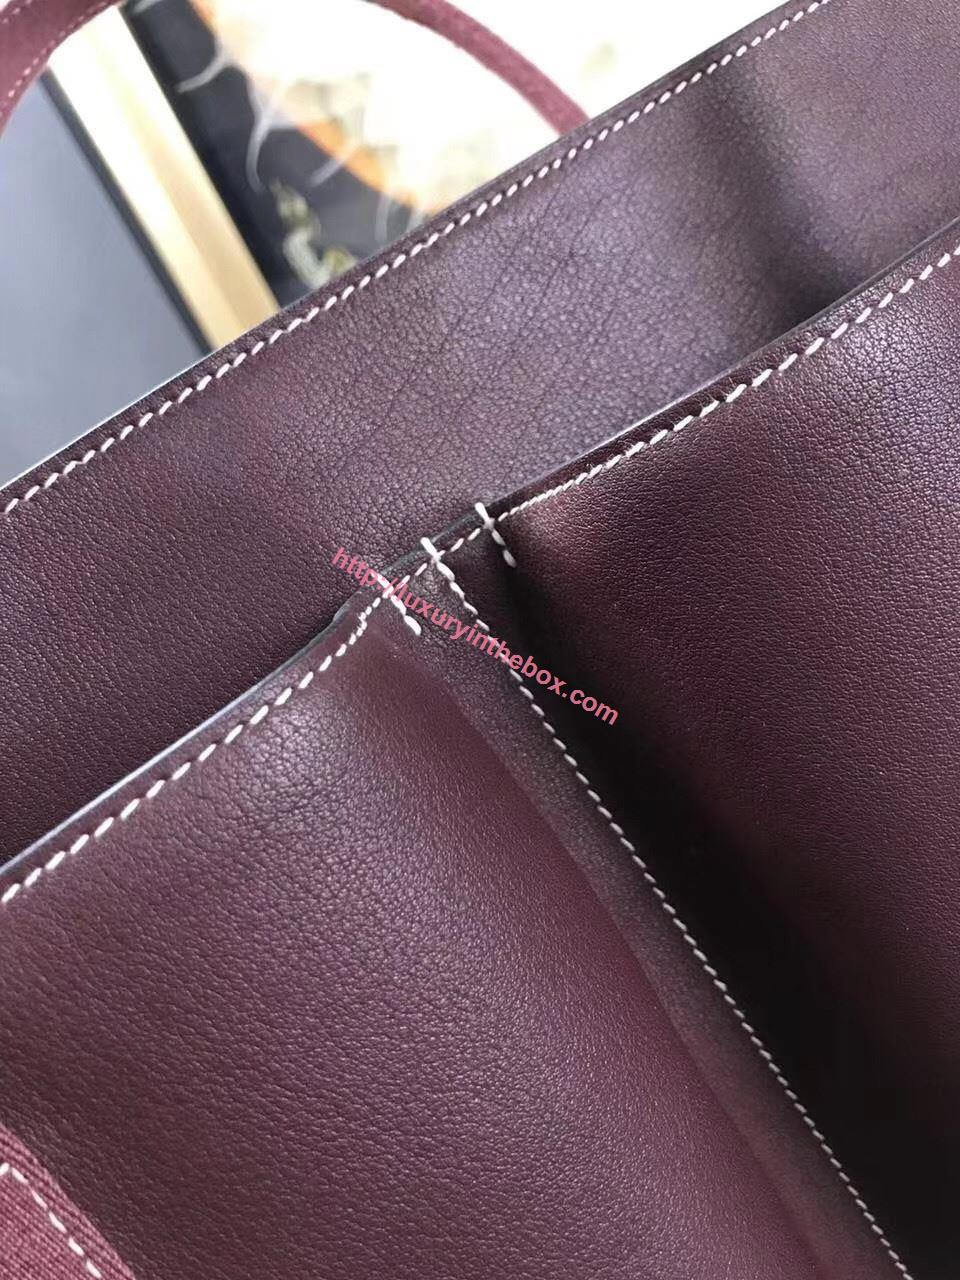 Picture of Hermes Caravane Horizontal 35CM Togo Leather Bag Mauve